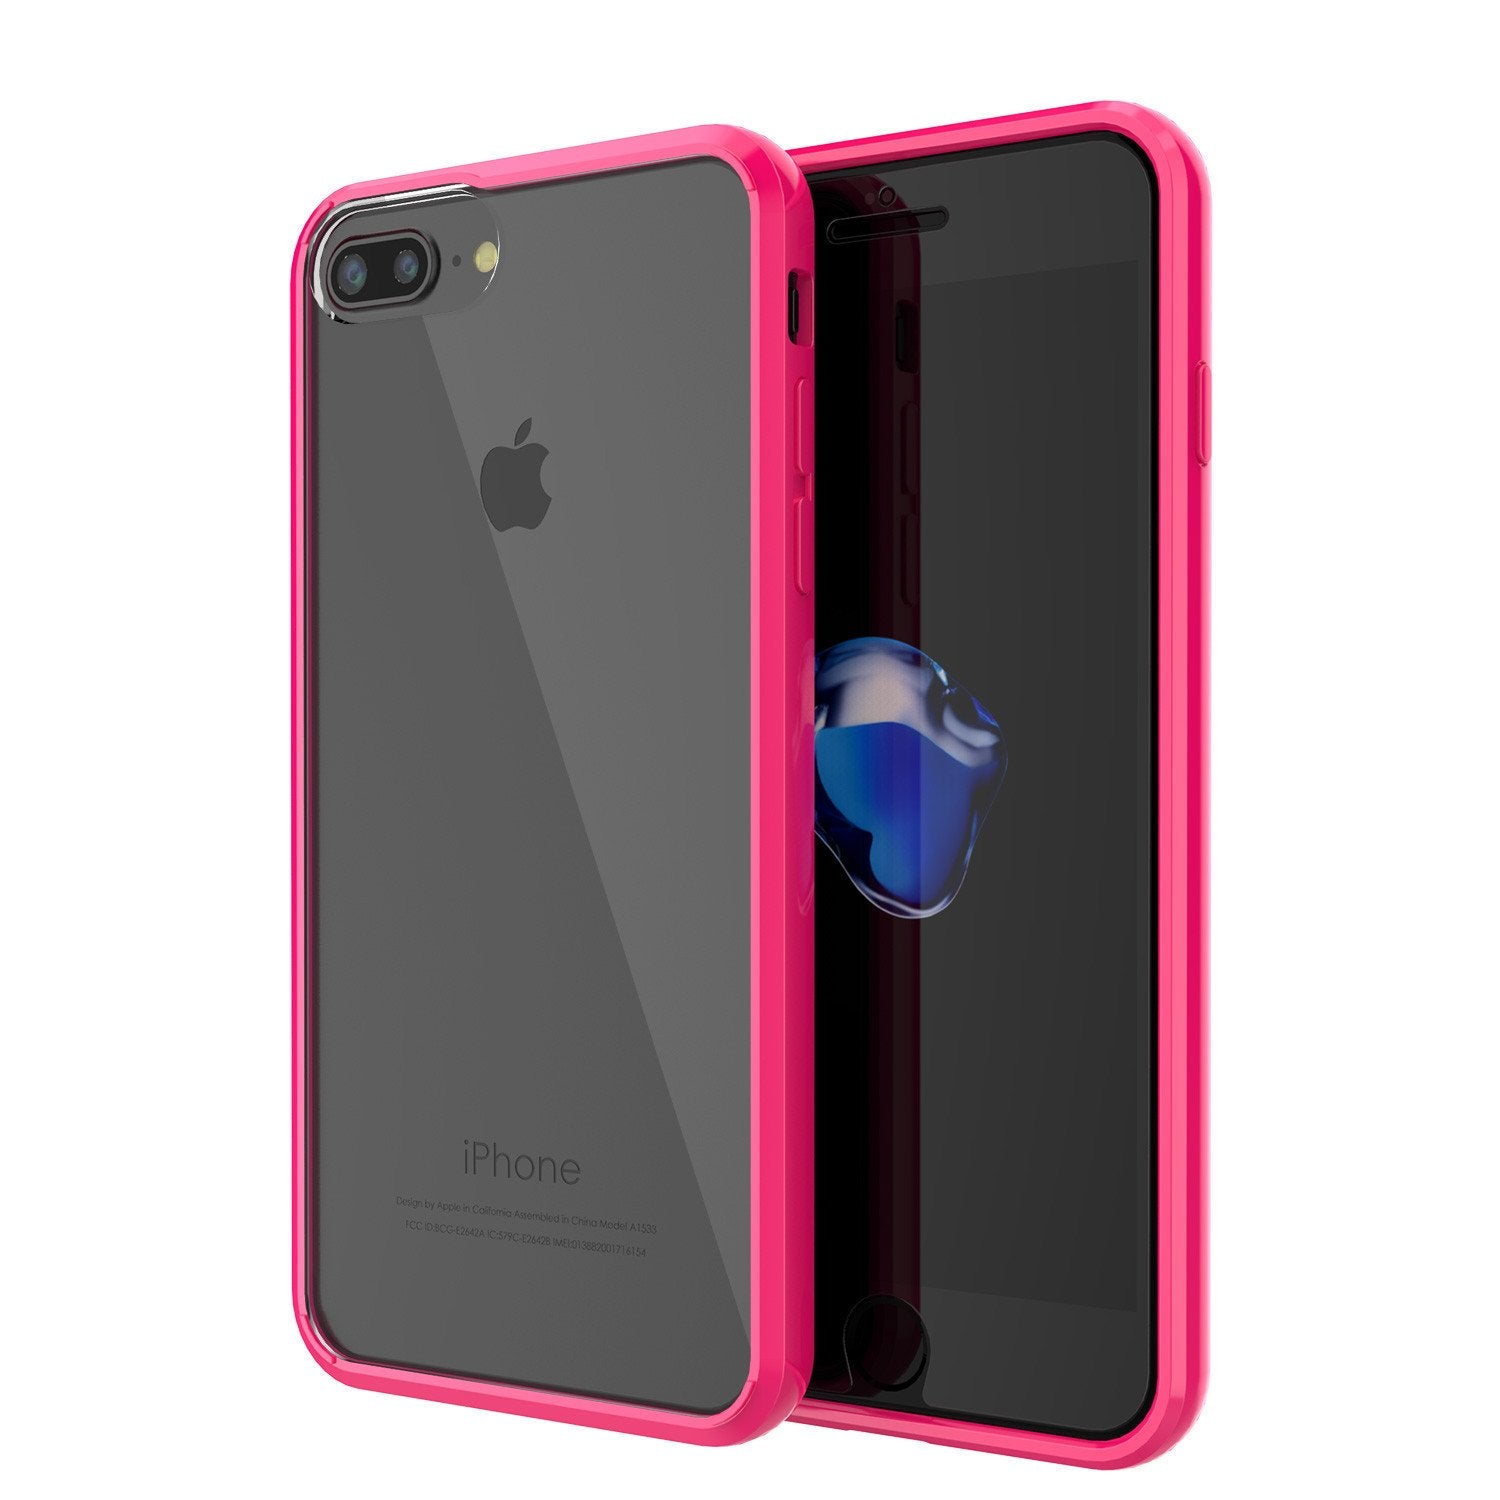 iPhone 7+ Plus Case Punkcase® LUCID 2.0 Pink Series for Apple iPhone 7+ Plus Slim | Slick Frame Lifetime Warranty Exchange